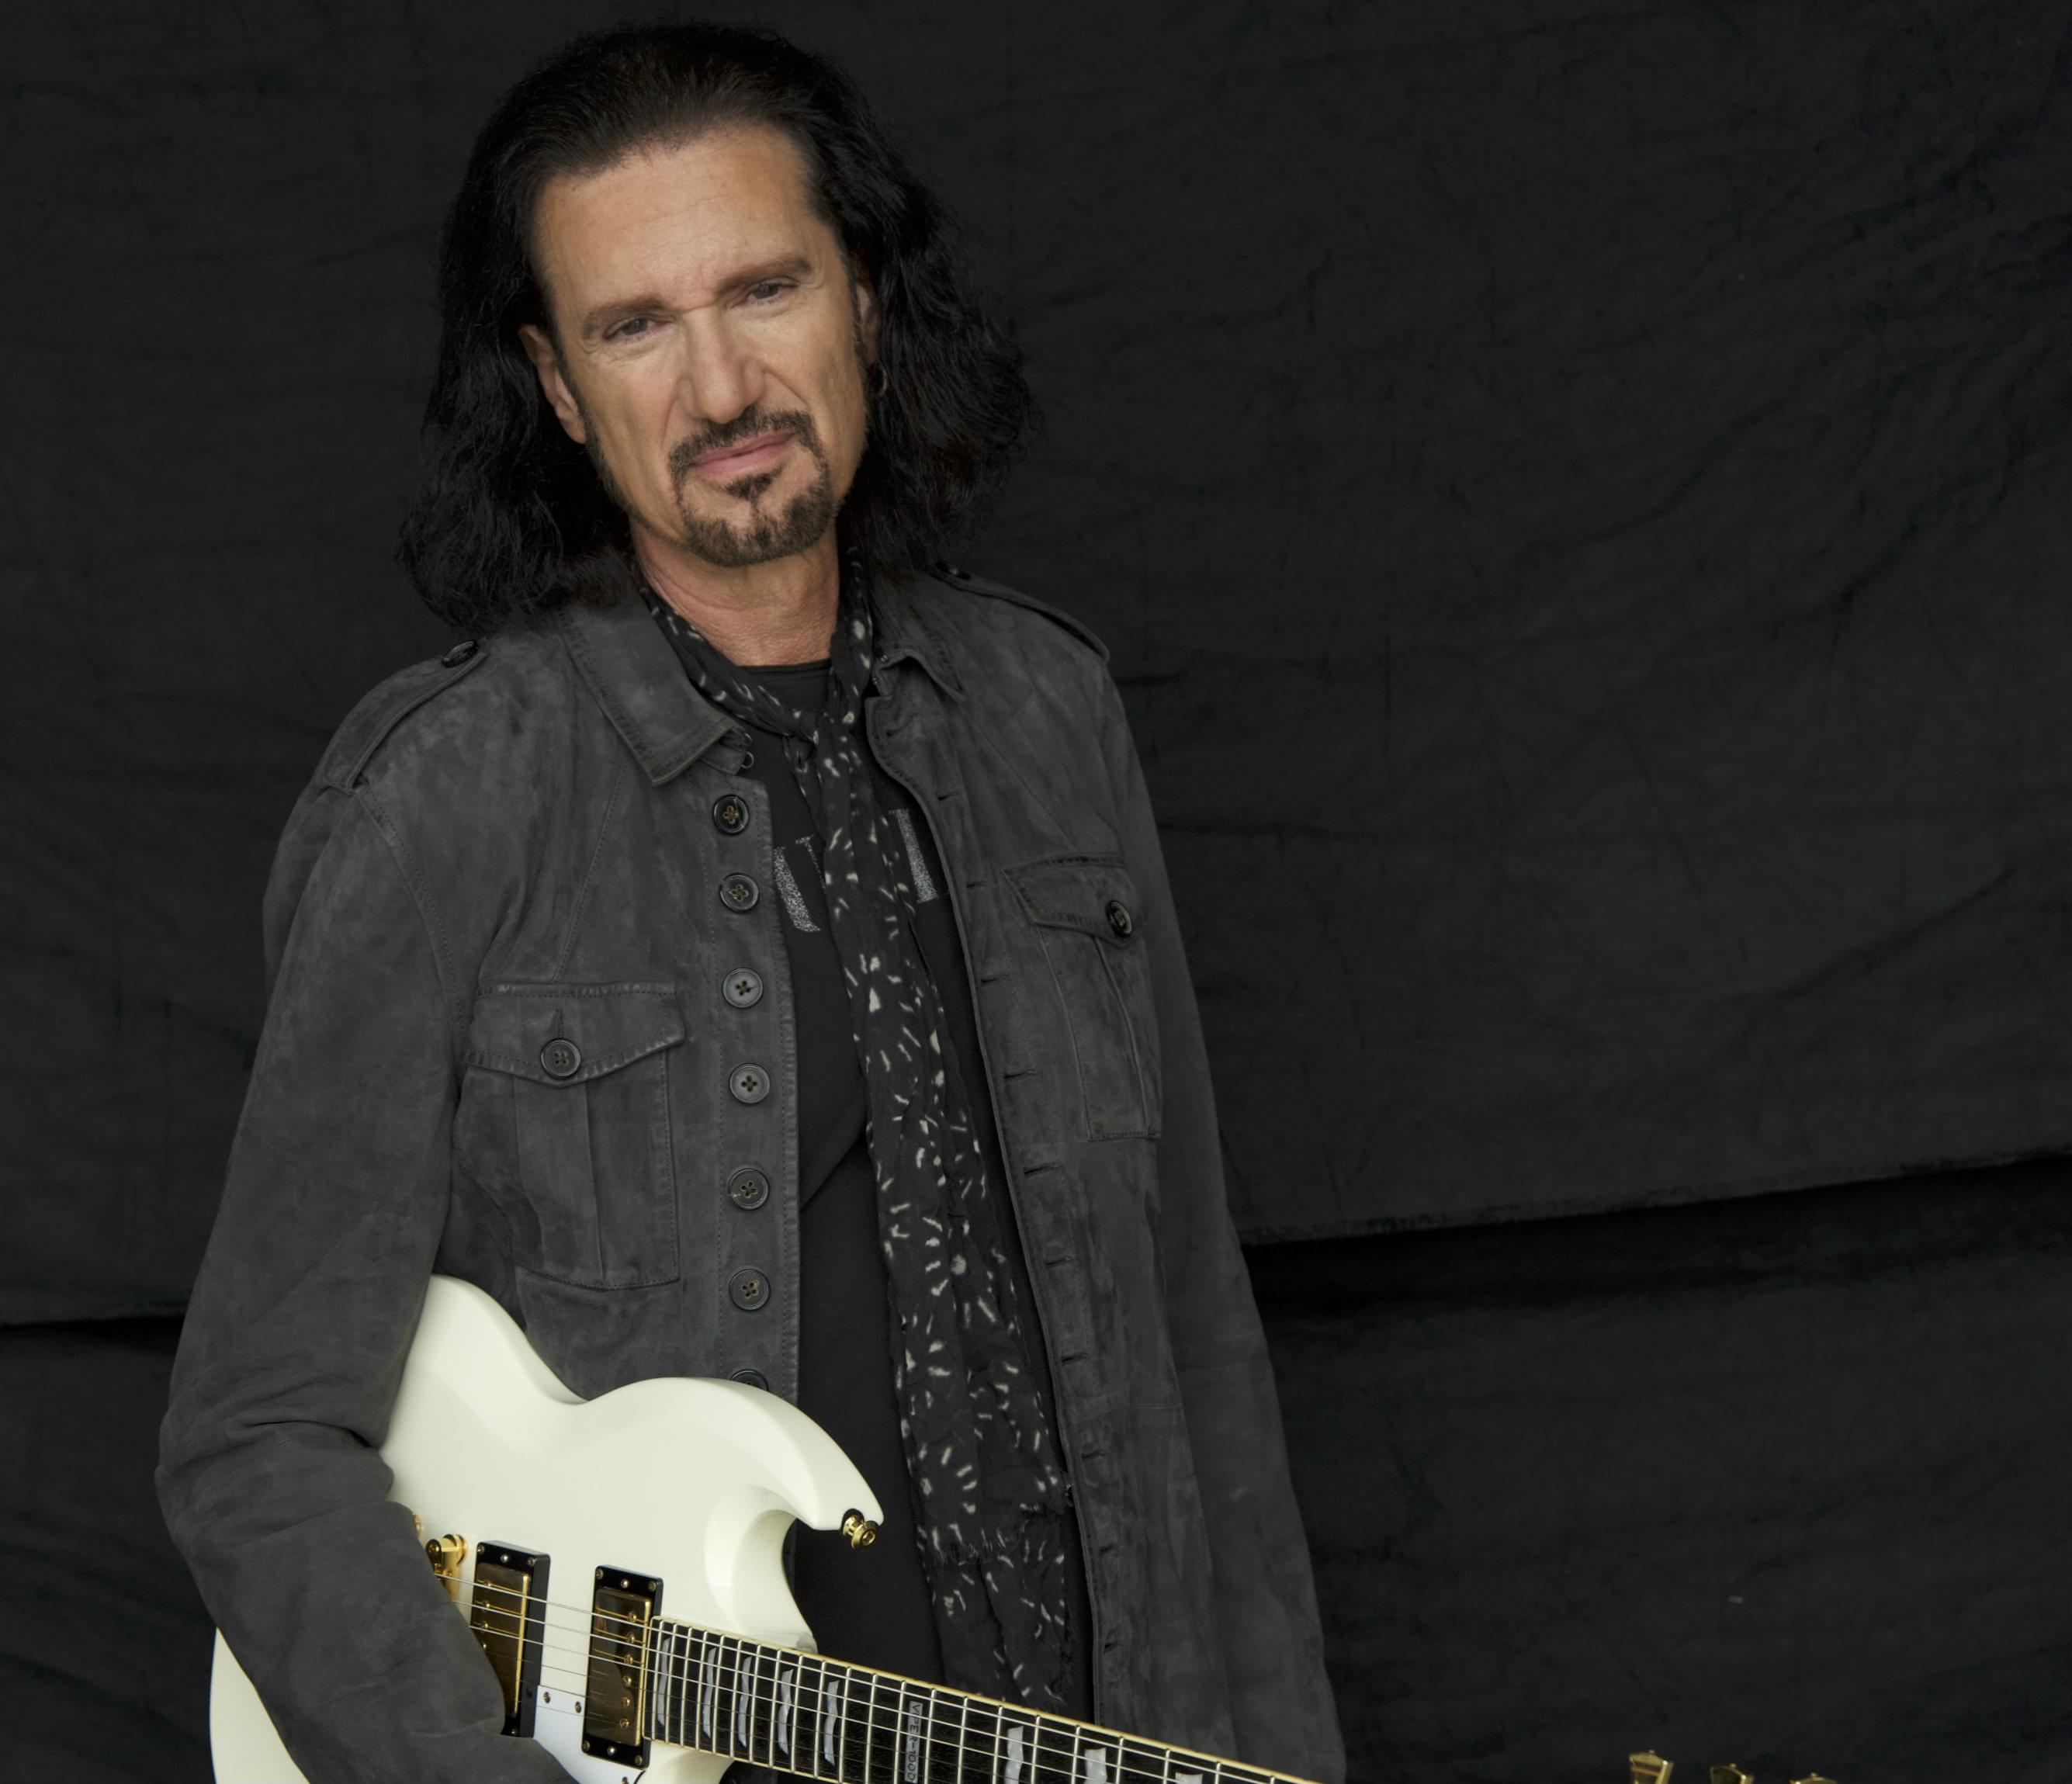 Bruce Kulick Talks Joining KISS, Sex Tips, and More [PODCAST]